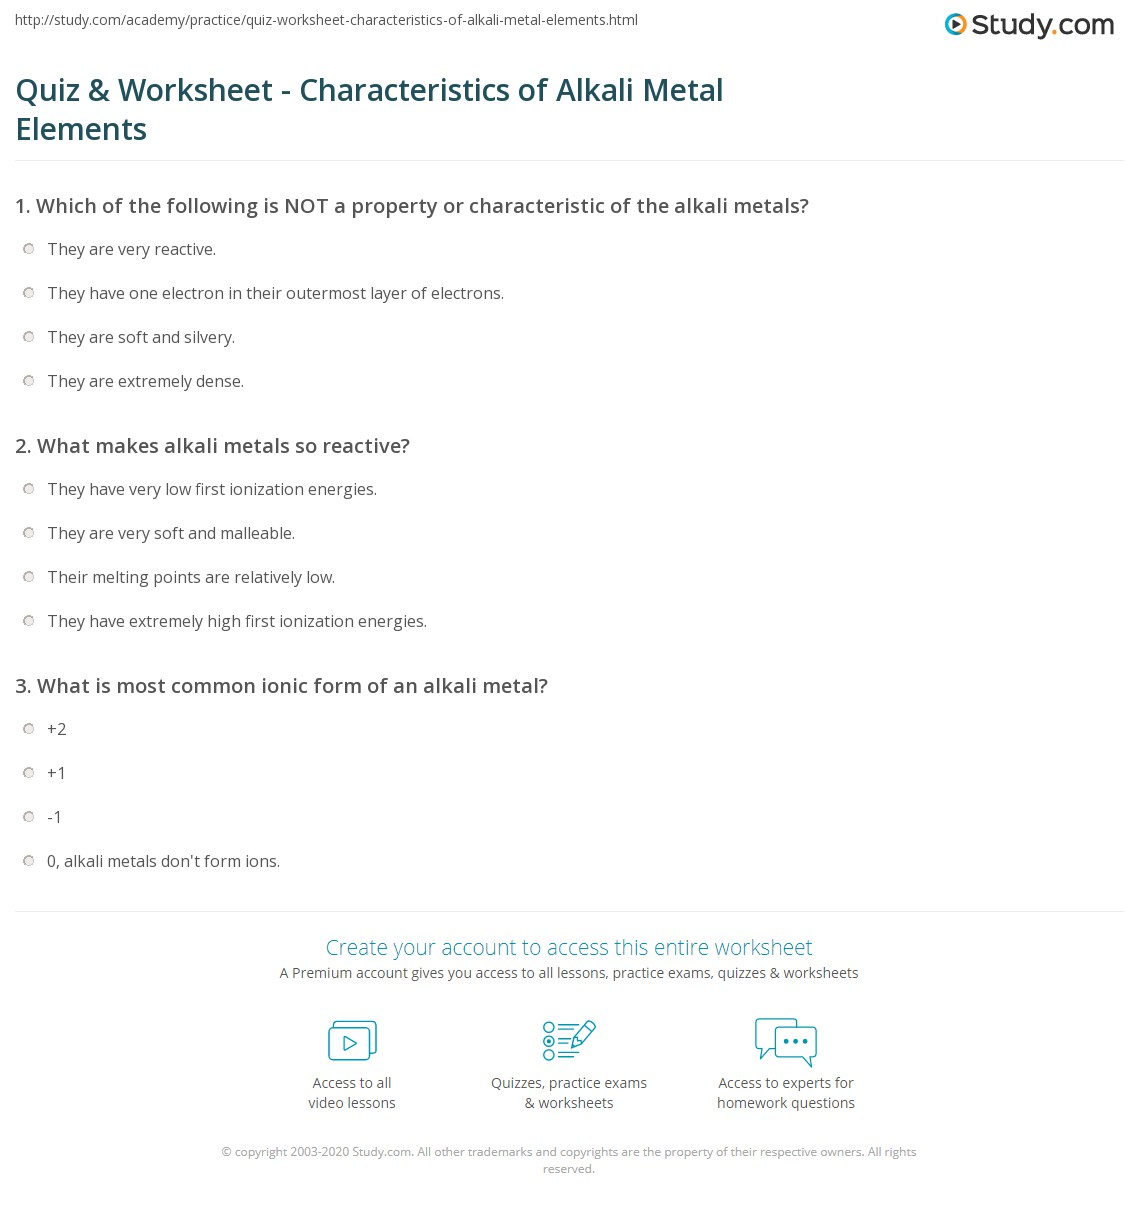 print alkali metal elements properties characteristics reactions worksheet - Periodic Table Alkali Metals Reactivity